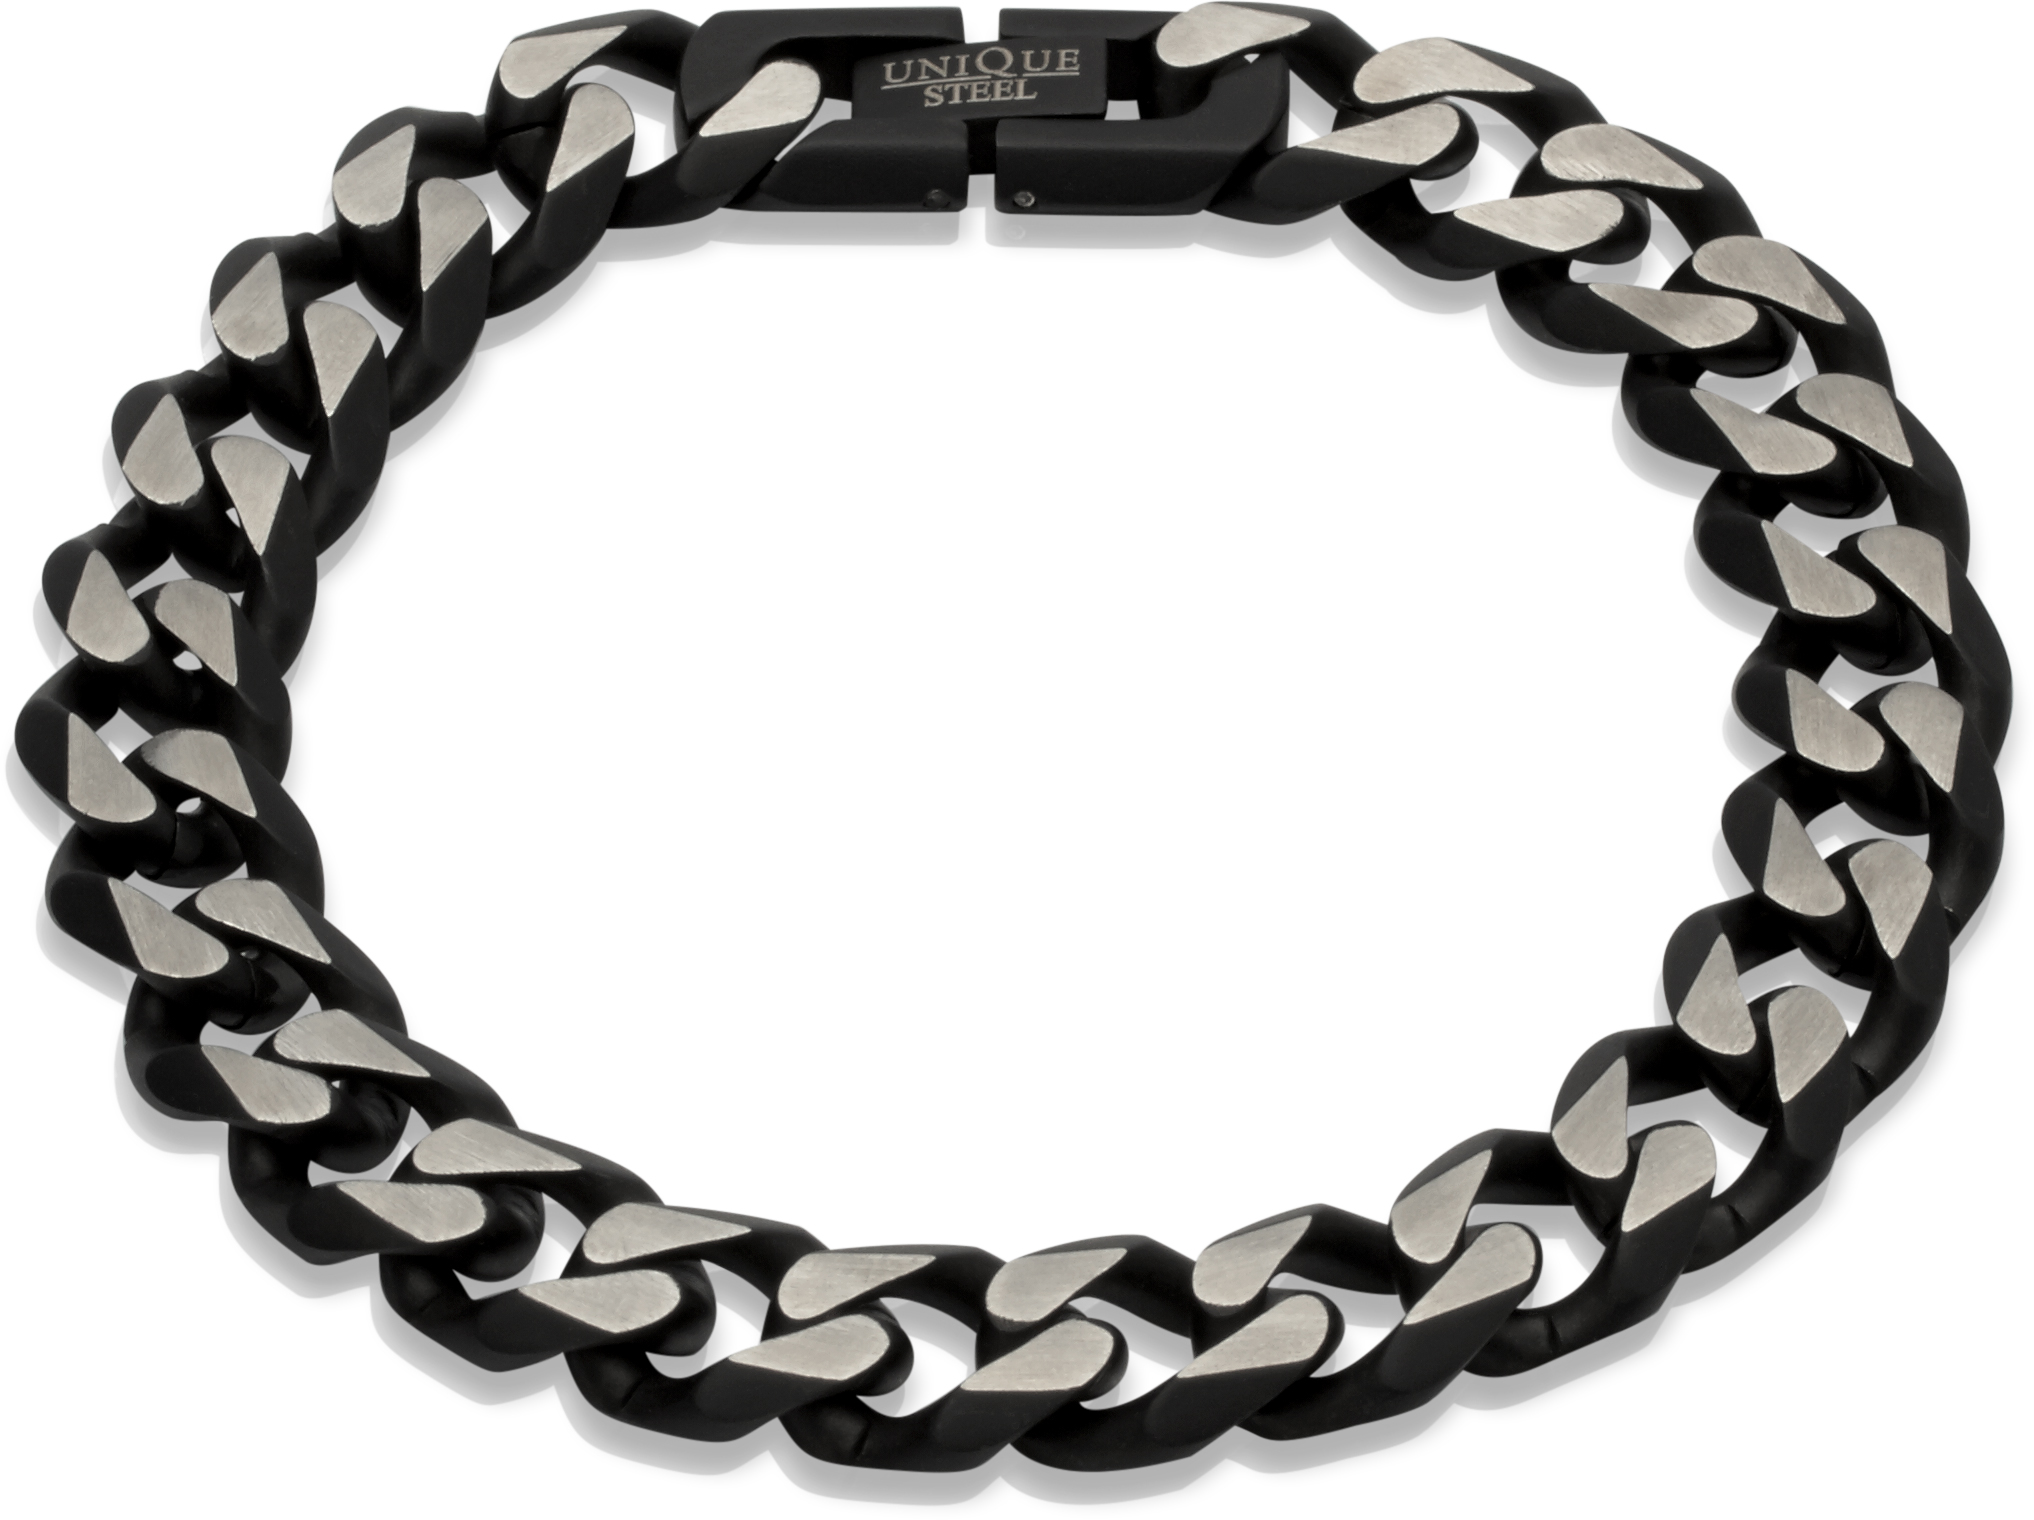 68808 - Polished Stainless Steel Curb link  bracelet